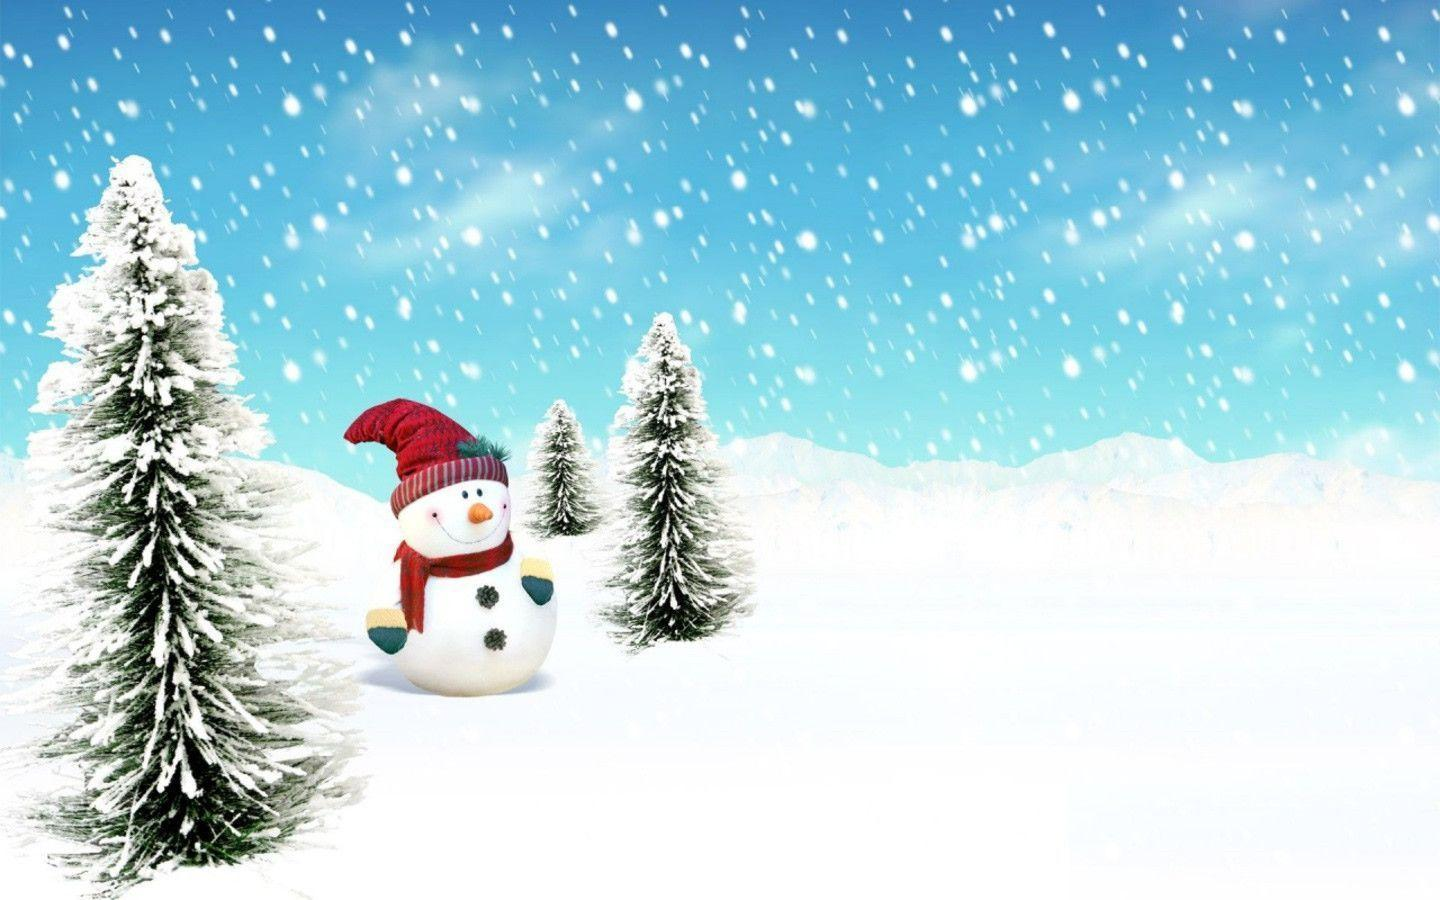 Free Christmas Snowman in Snow wallpaper Wallpapers - HD ...